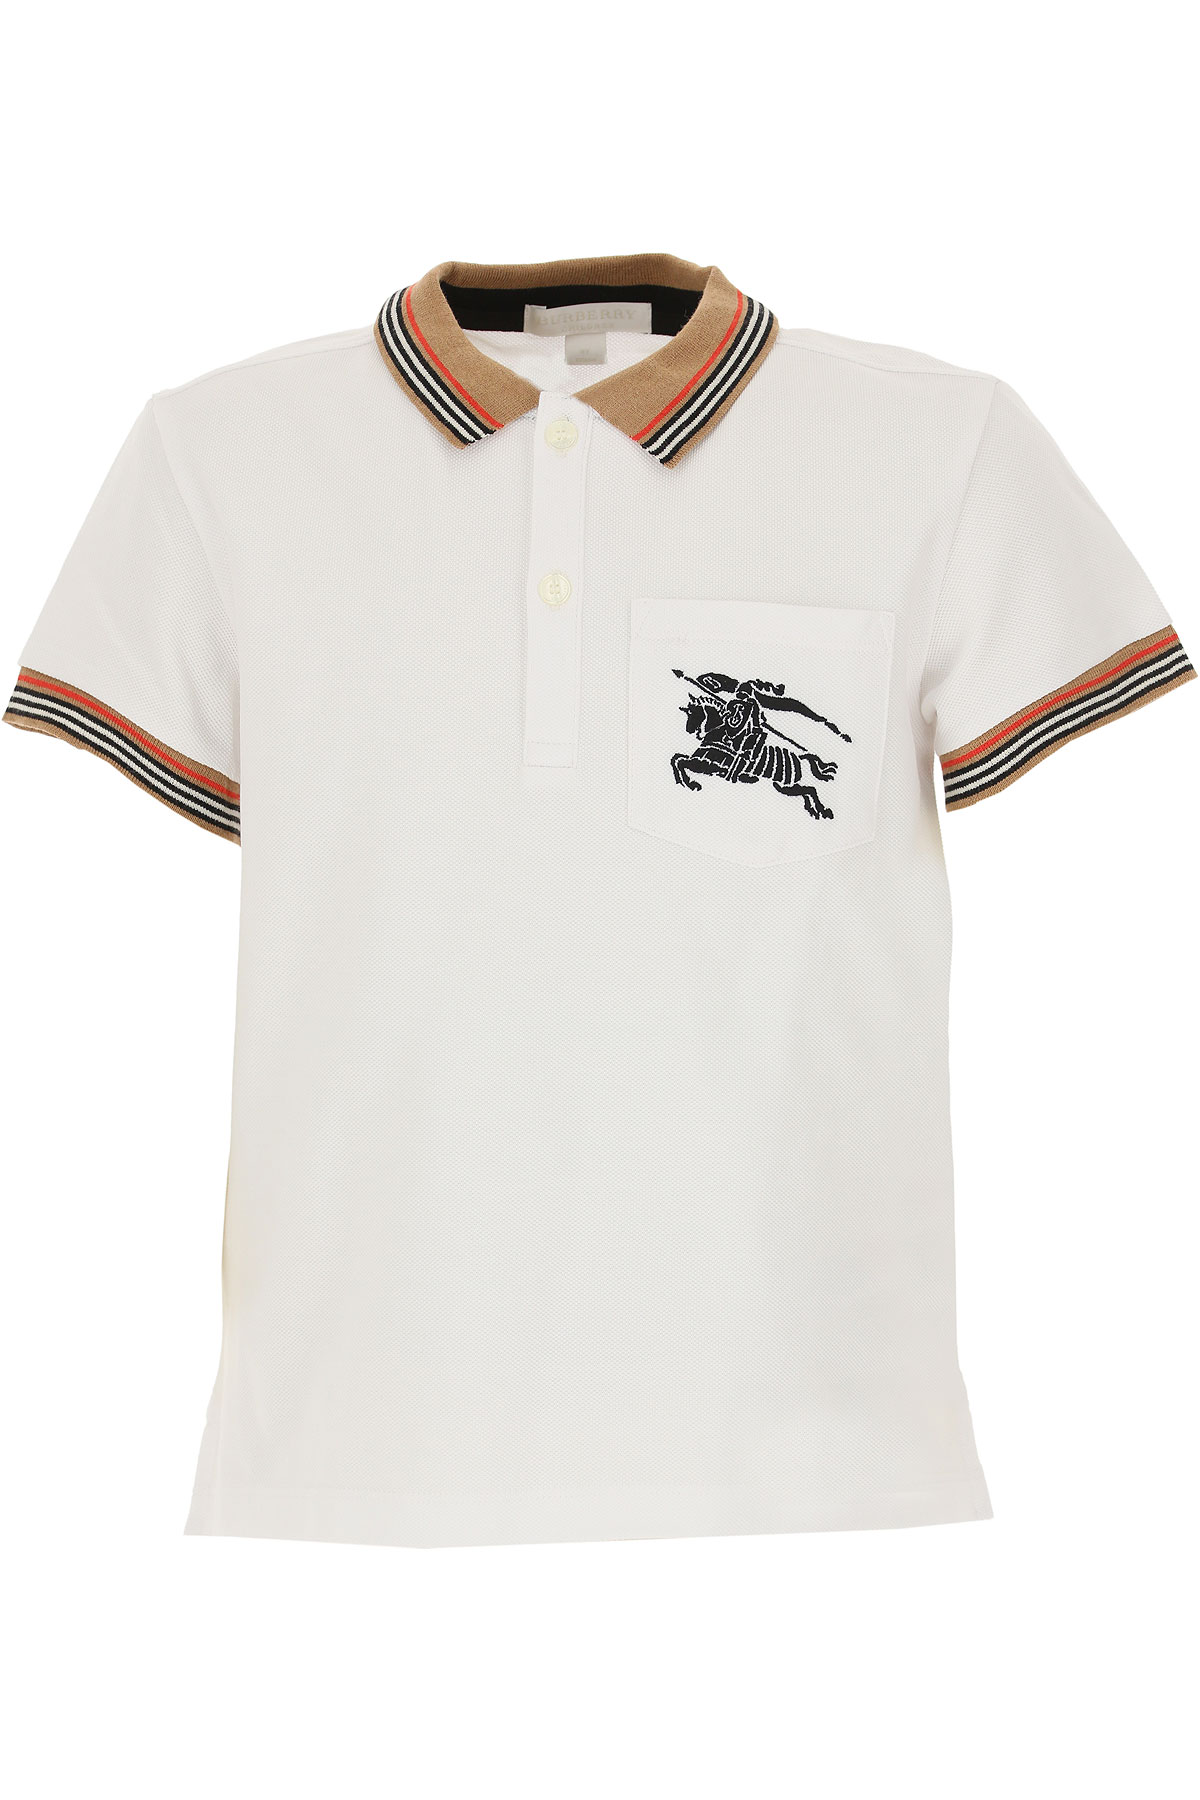 Image of Burberry Kids Polo Shirt for Boys, White, Cotton, 2017, 10Y 4Y 5Y 6Y